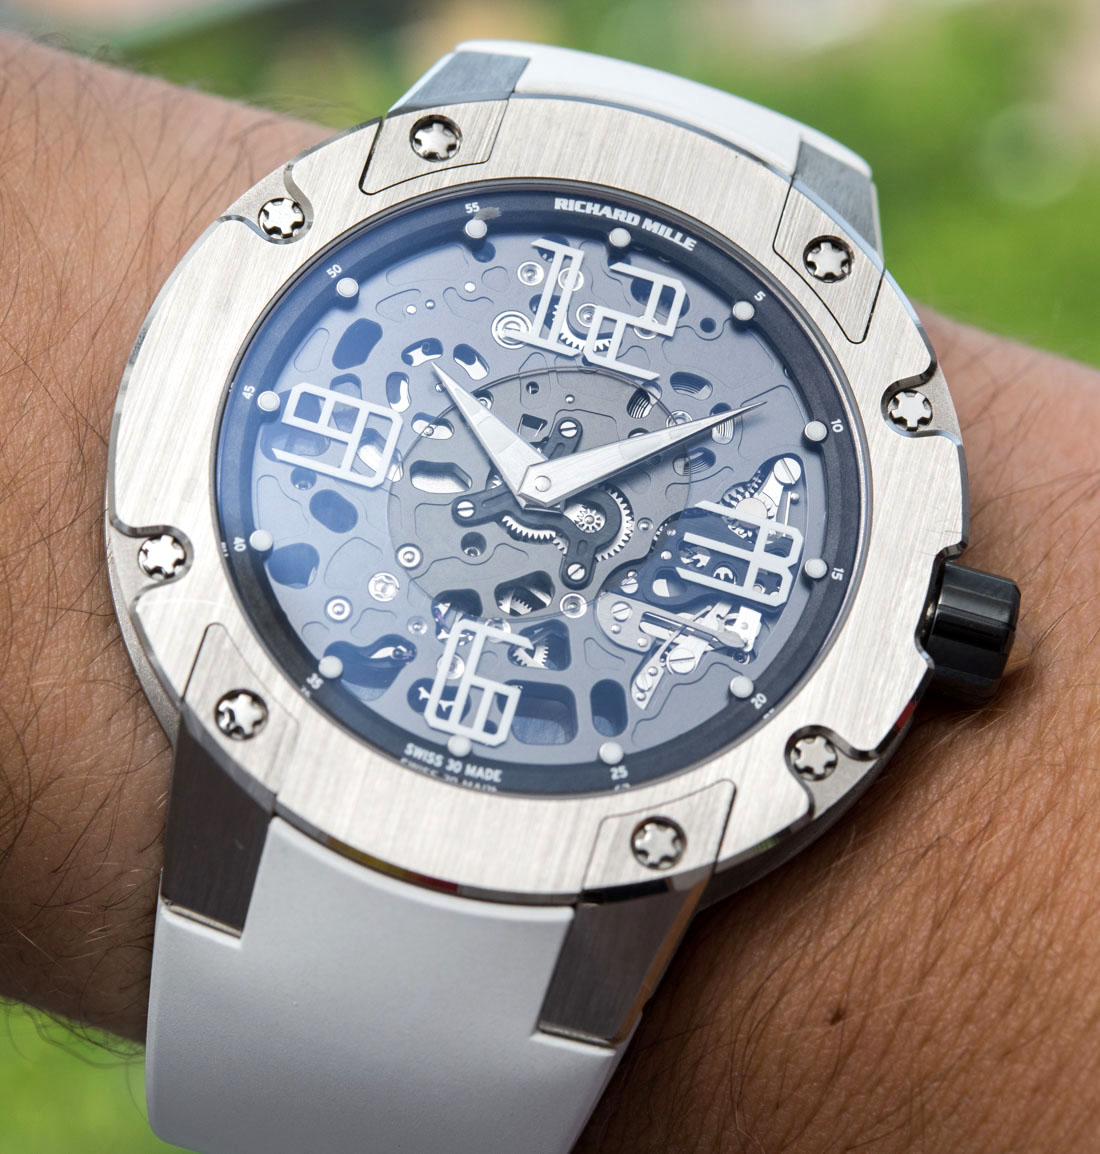 Richard Mille RM033 In White Gold Watch Review Wrist Time Reviews